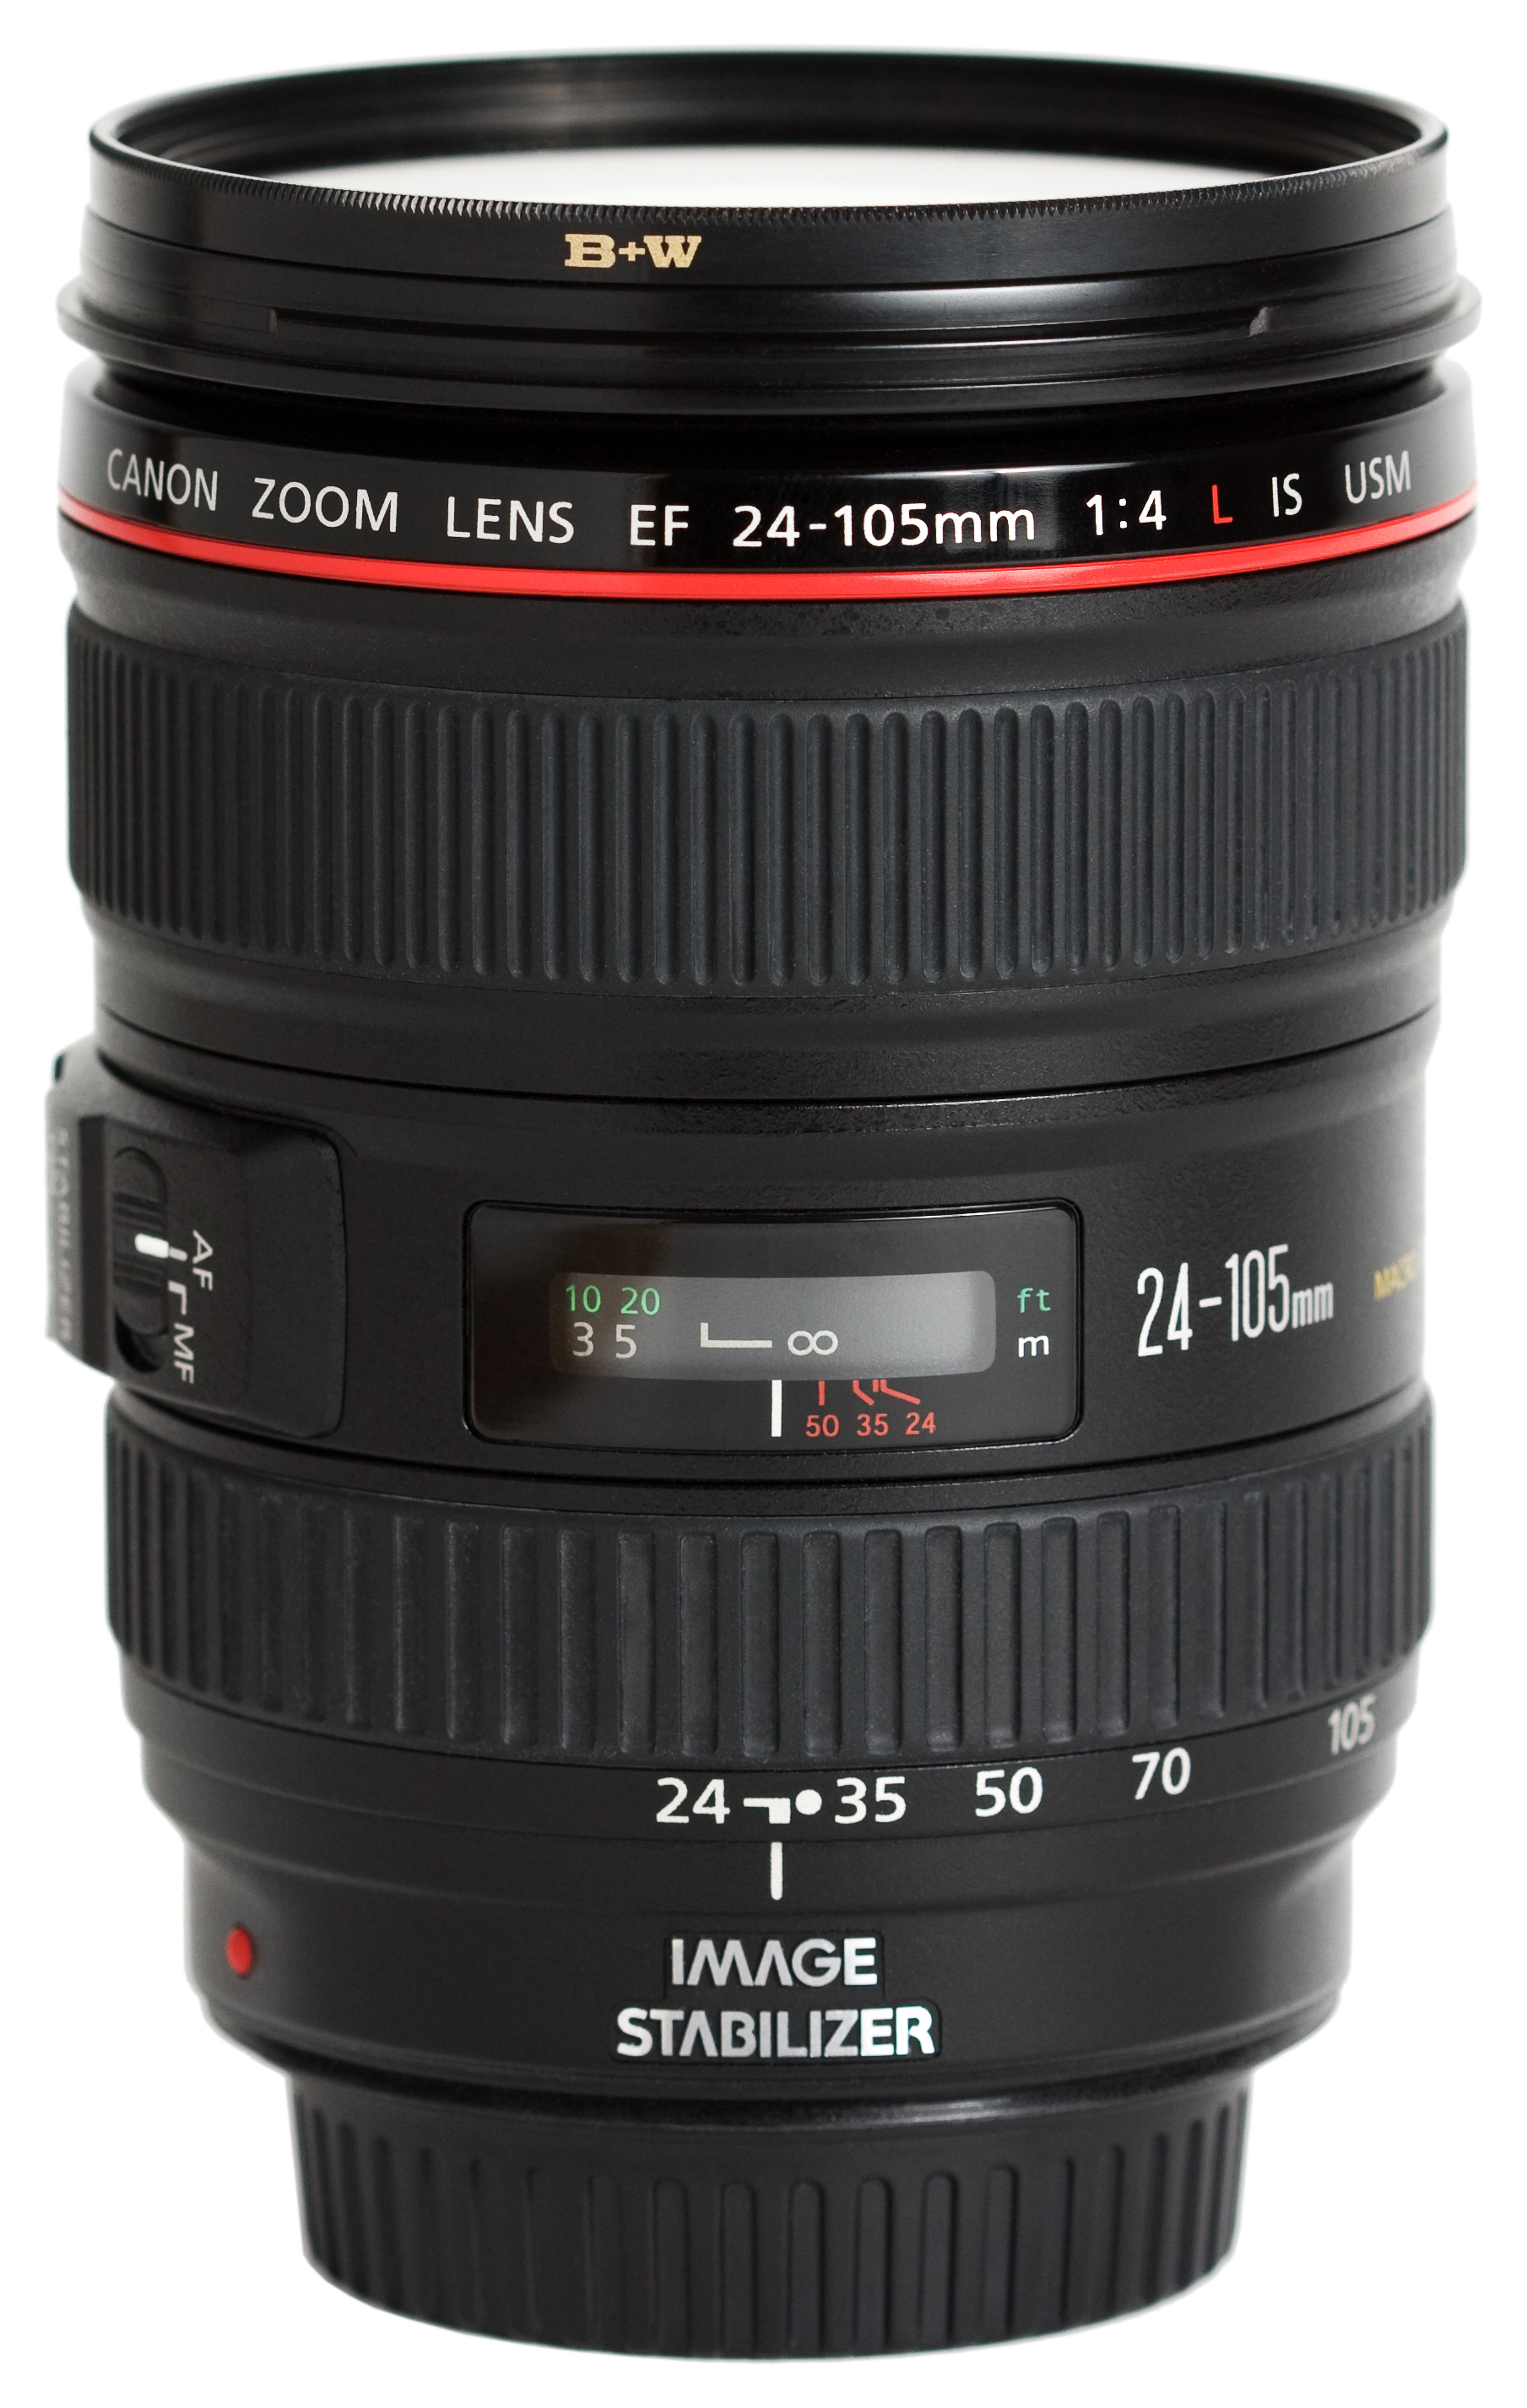 A Guide To The Best Canon Camera Lenses